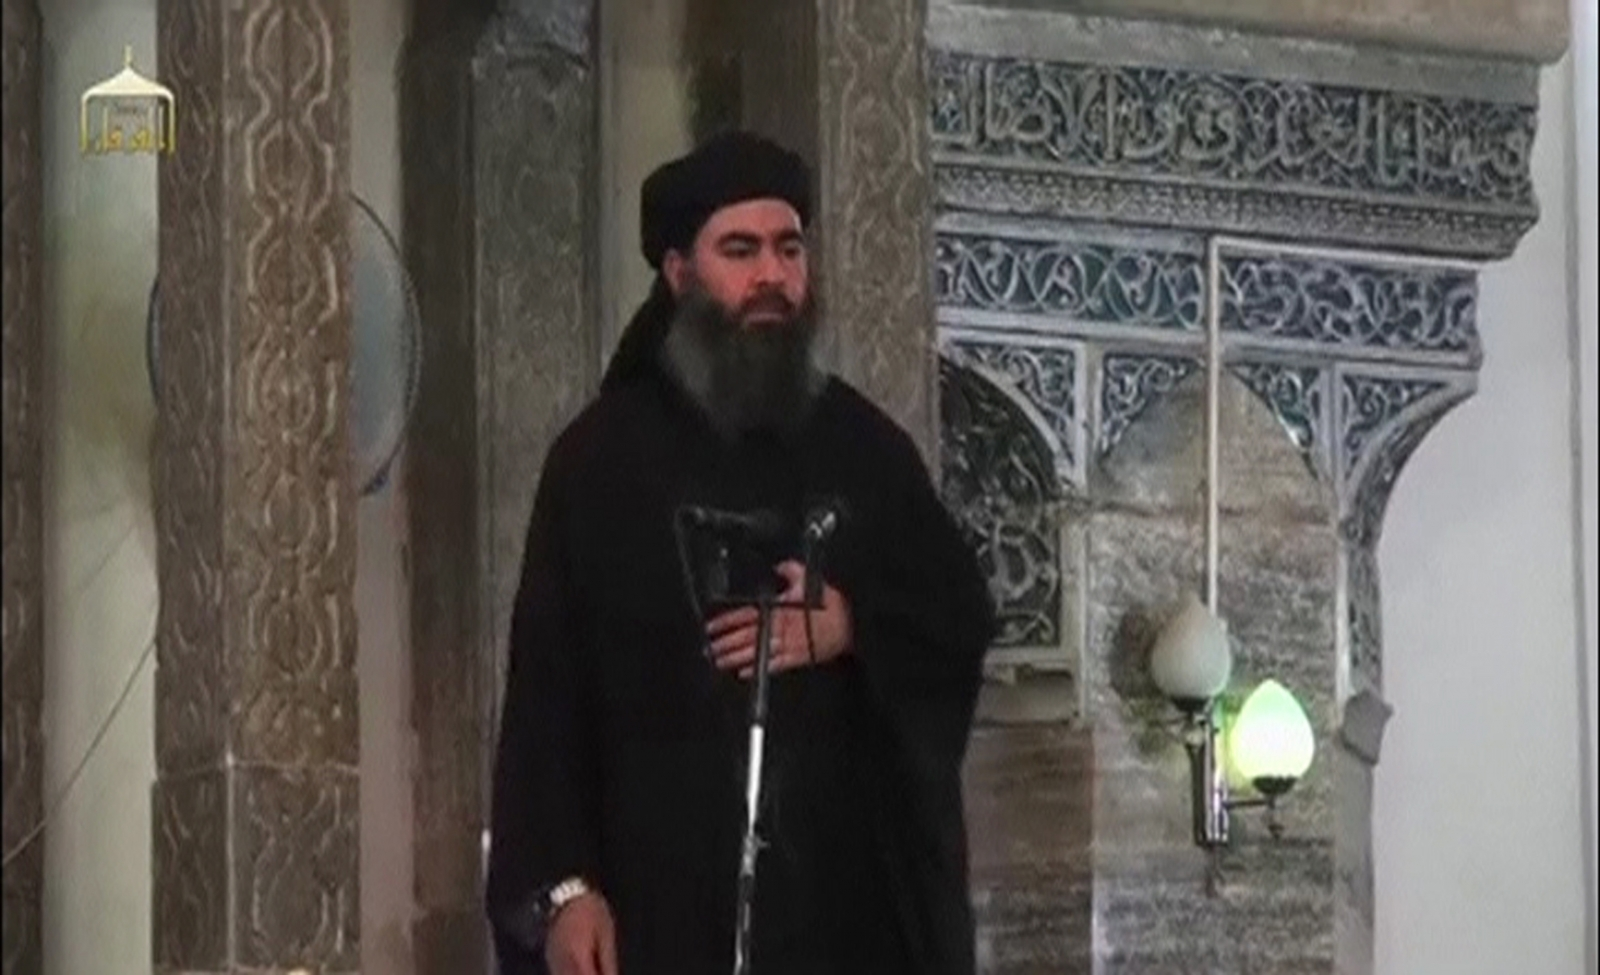 Isis chief Abu Bakr al-Baghdadi, the leader of Iraq-based extremist group Islamic State.